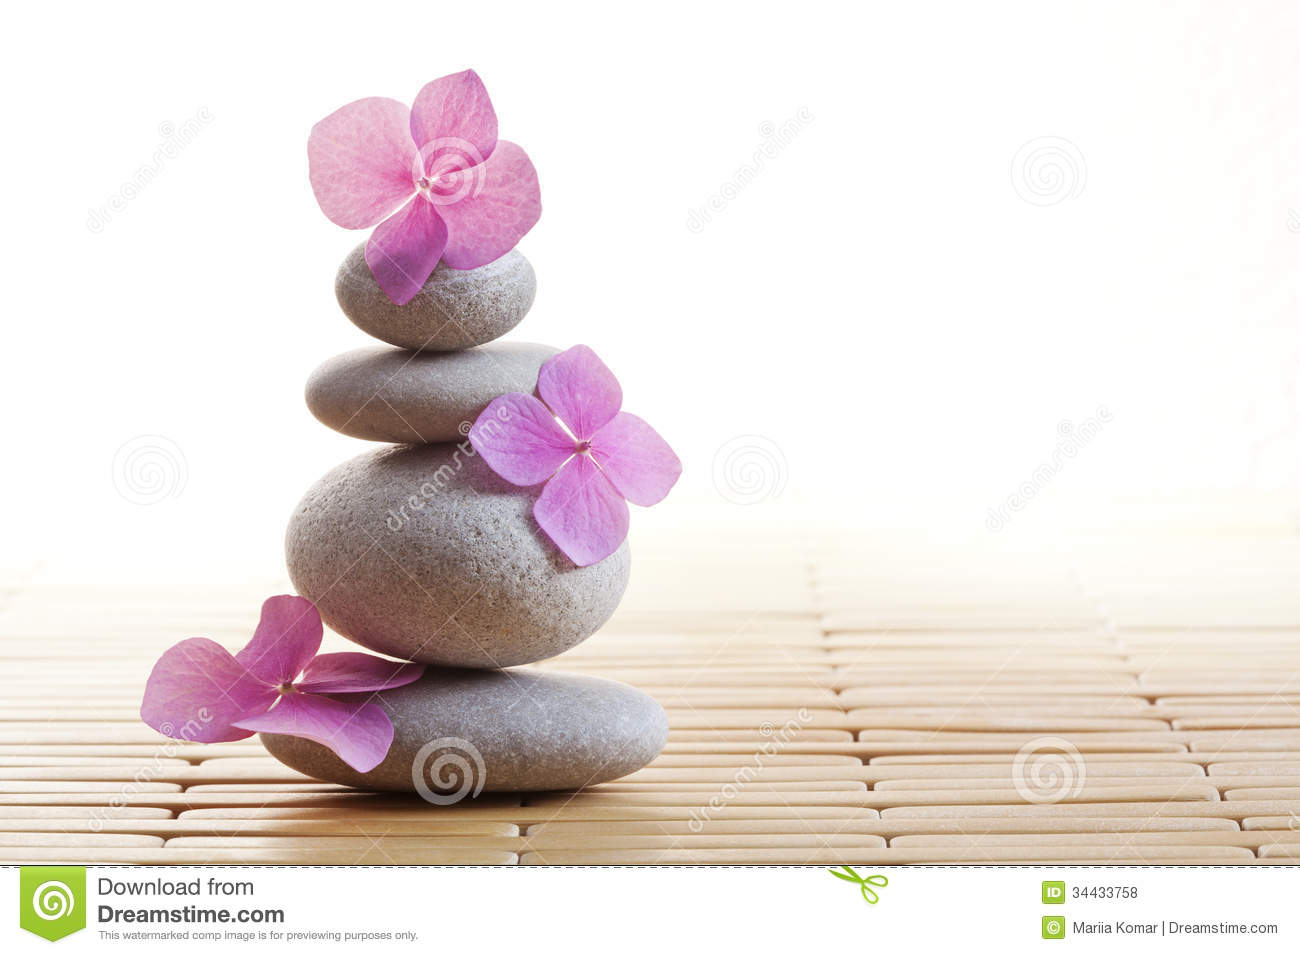 zen stones and flowers stock photo image of lucky peace. Black Bedroom Furniture Sets. Home Design Ideas